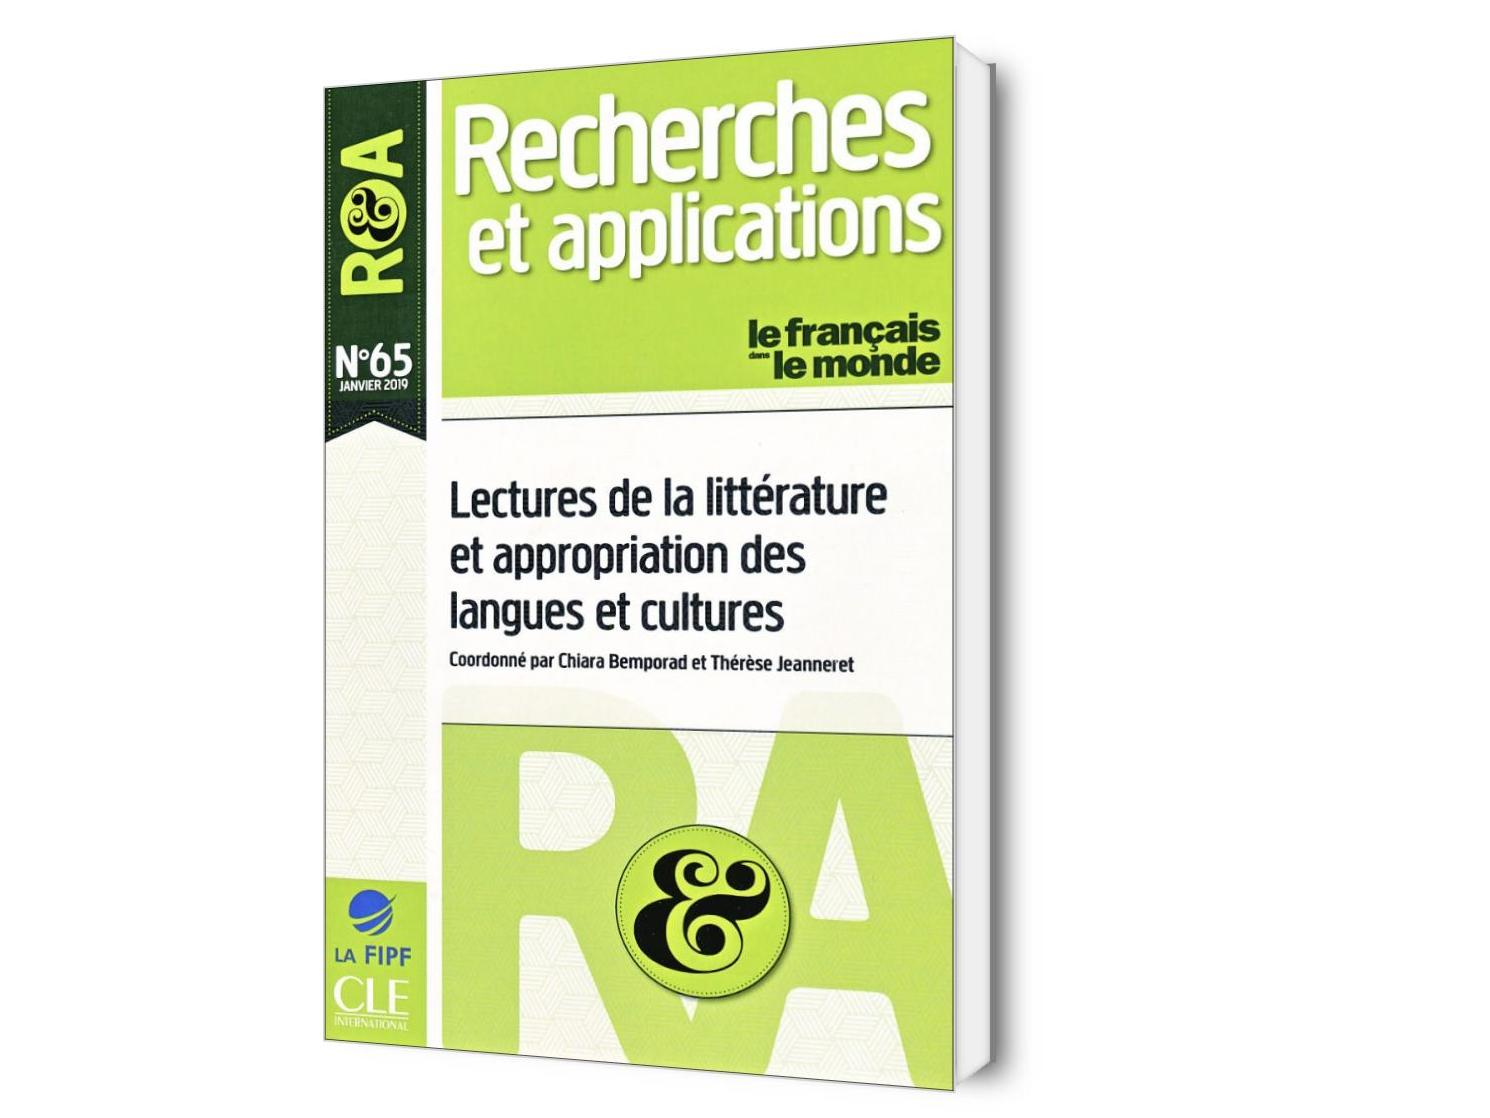 Lectures de la littérature et appropriation des langues et cultures